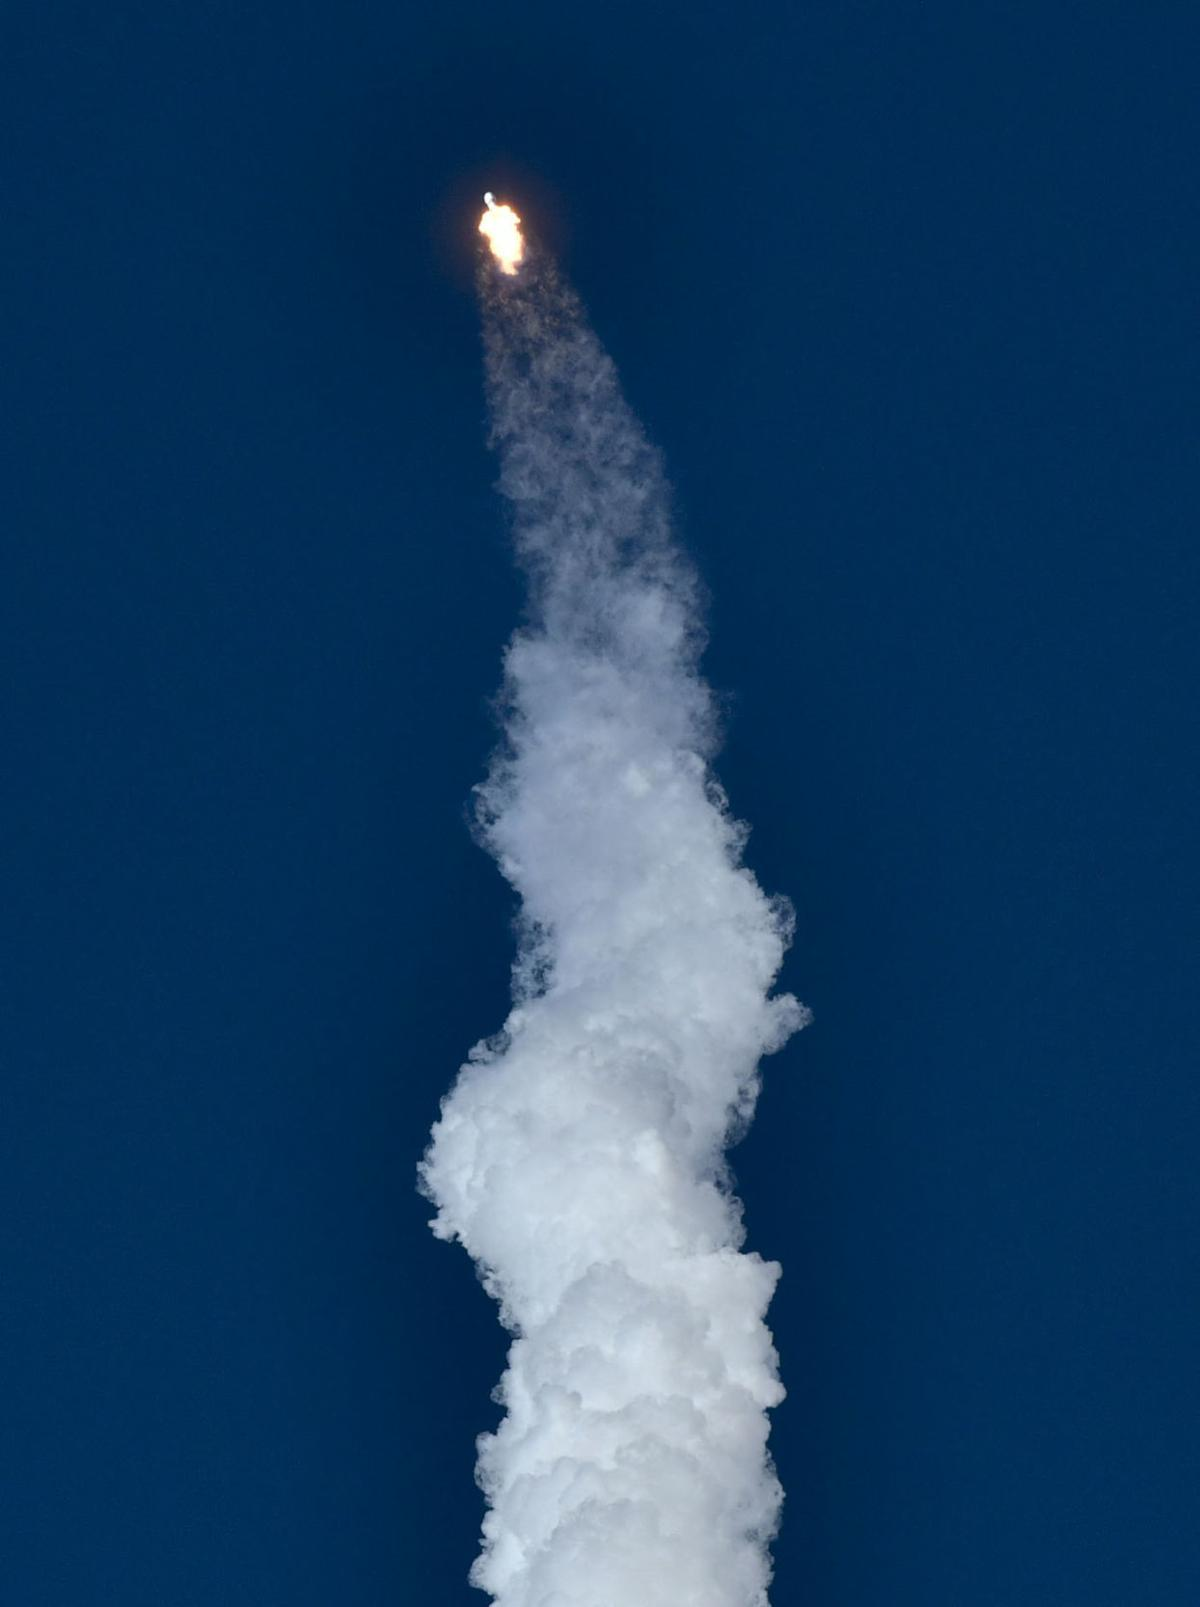 033018 SpaceX Iridium launch 13.jpg (copy)